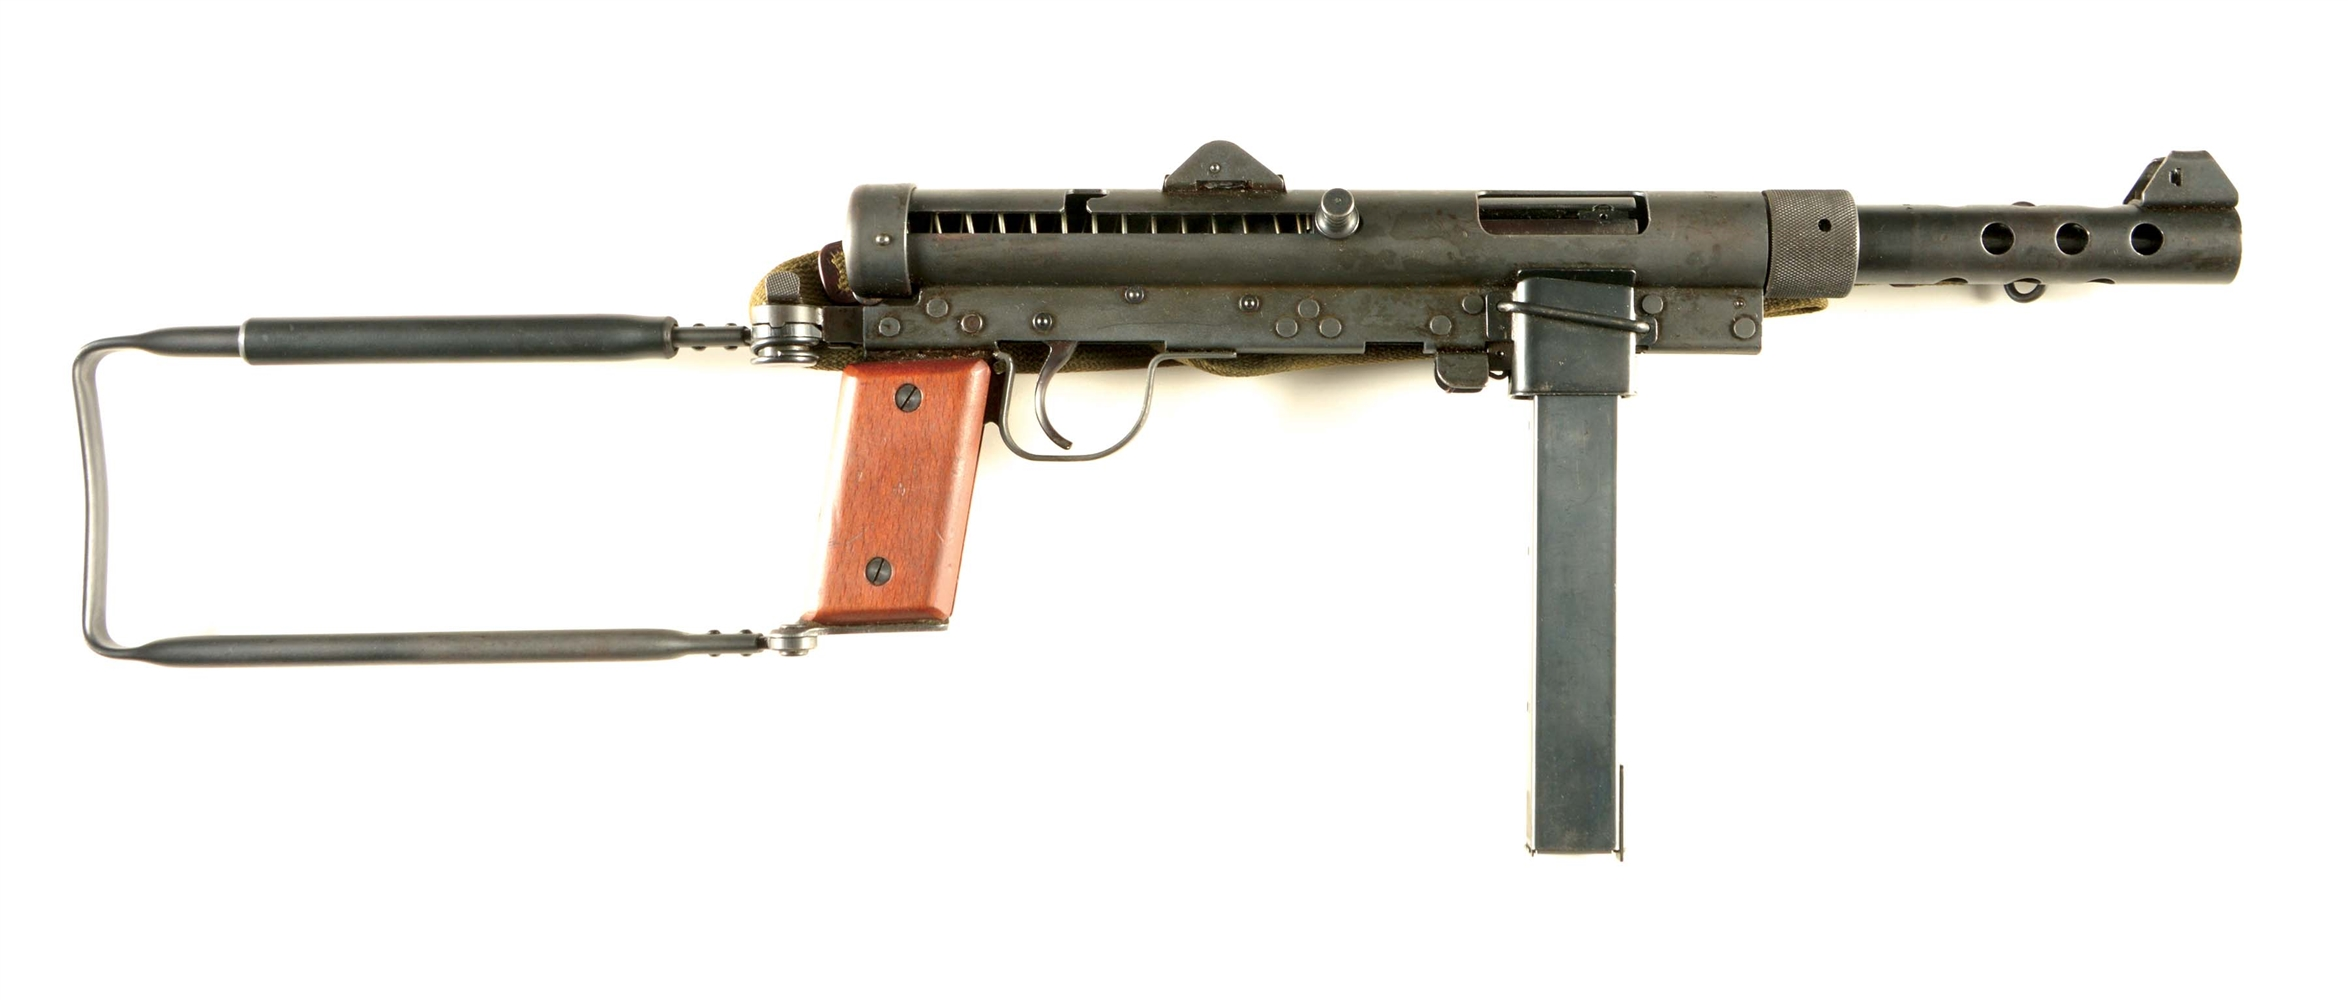 (N) ABSOLUTELY BEAUTIFUL NEAR MINT HIGHLY DESIRABLE ORIGINAL FIRST PRODUCTION MODEL CARL GUSTAF M/45 SWEDISH K MACHINE GUN (PRE-86 DEALER SAMPLE).